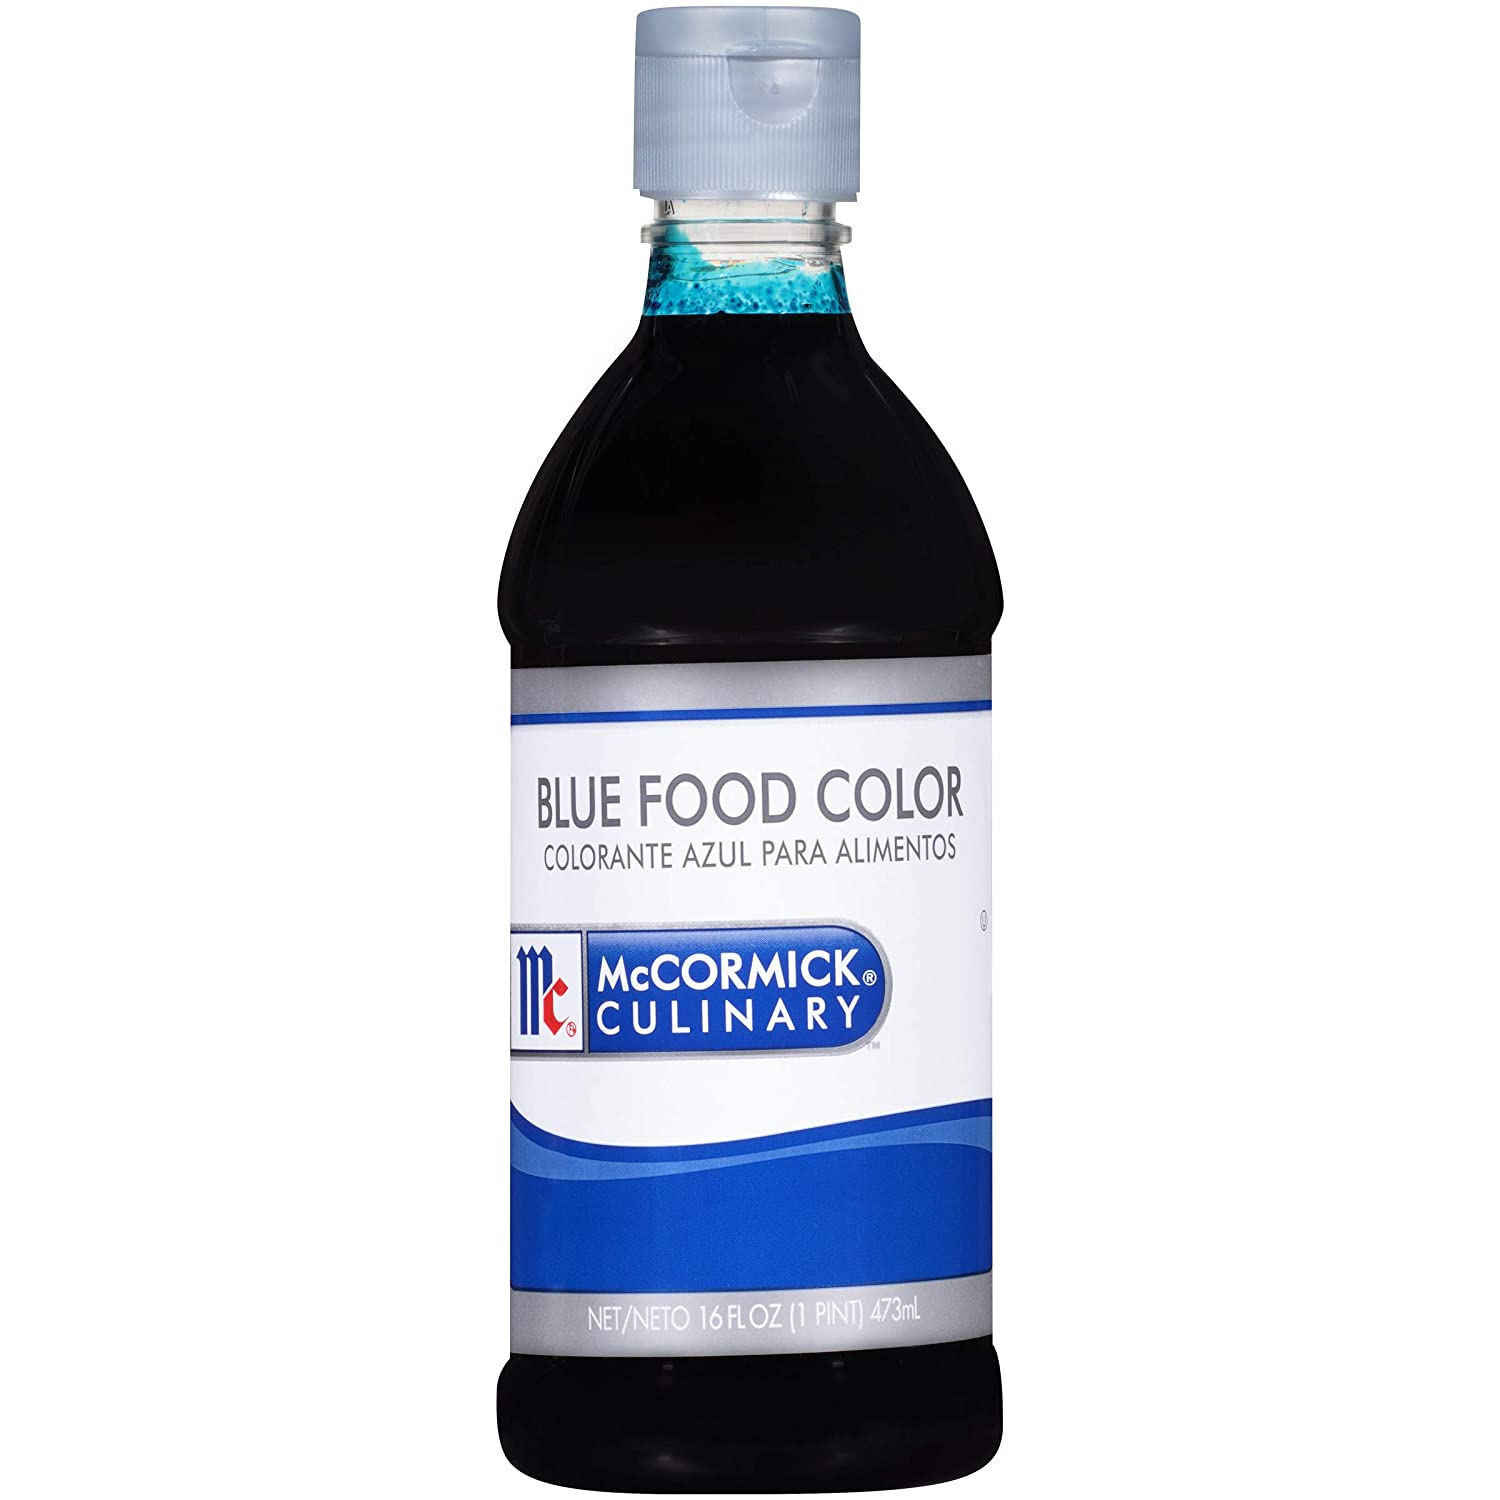 McCormick Culinary Blue Food Color, 16 fl oz